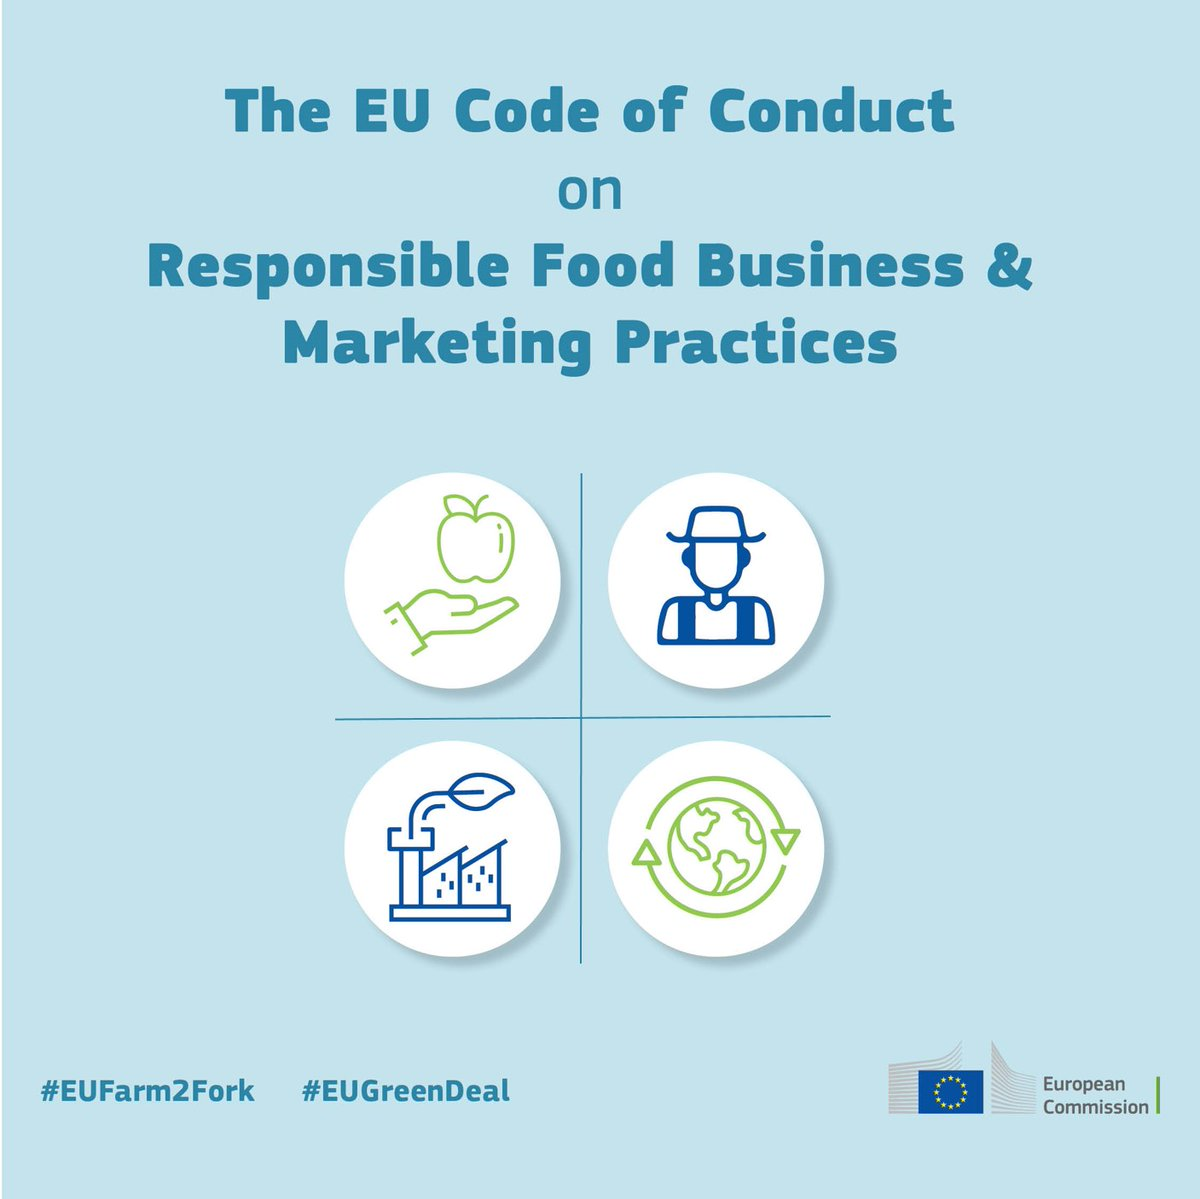 We are proud to be signatories to the EU Code of Conduct on Responsible Food Business and Marketing Practices and contribute to the aspirations in this Code in support of the path towards sustainable food systems.  #EUFarm2Fork #EUGreenDeal https://t.co/6FvUZ38lh7 https://t.co/sO4DxMjPPm